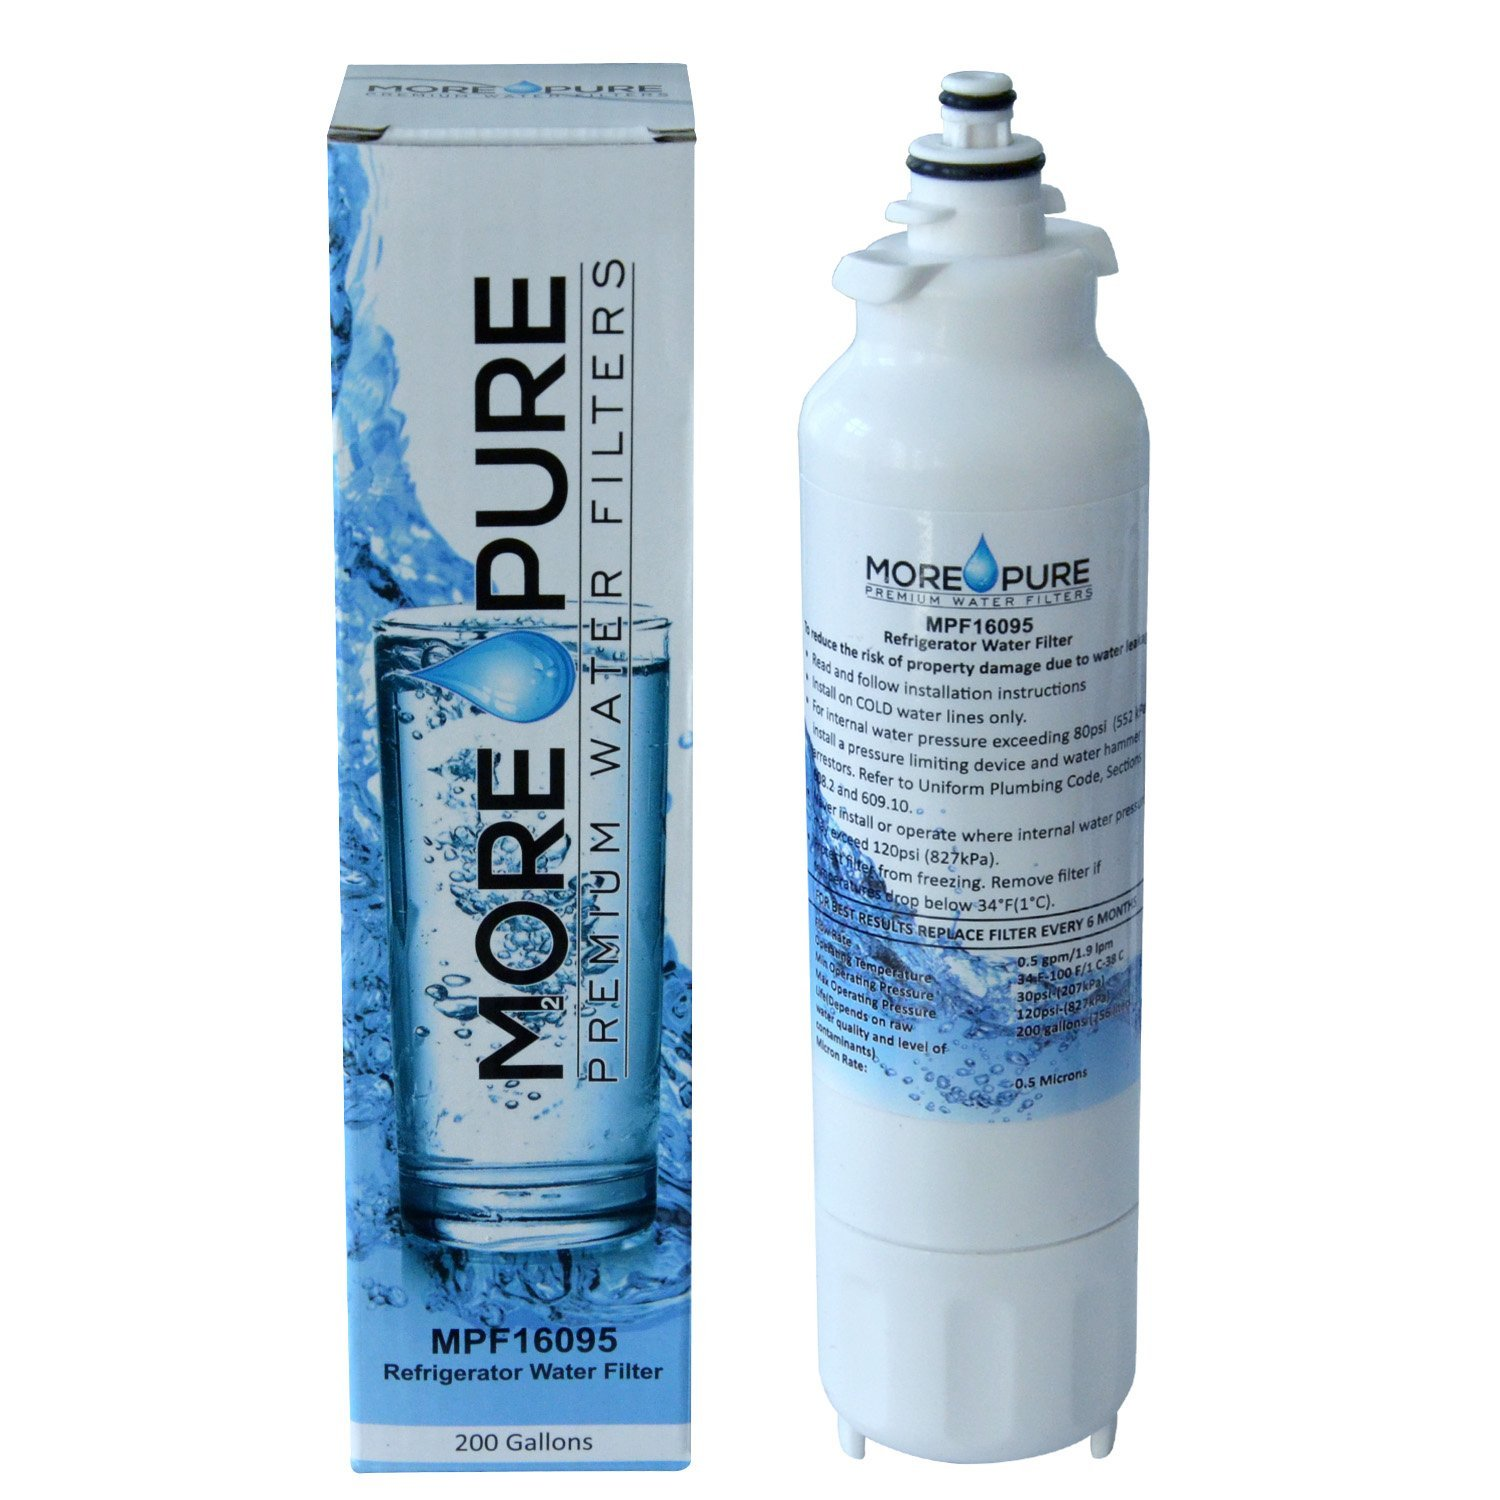 MORE Pure MPF16095 Refrigerator Water Filter Compatible with LG LT800P and Kenmore 46-9460 by MORE Pure Filters (Image #1)